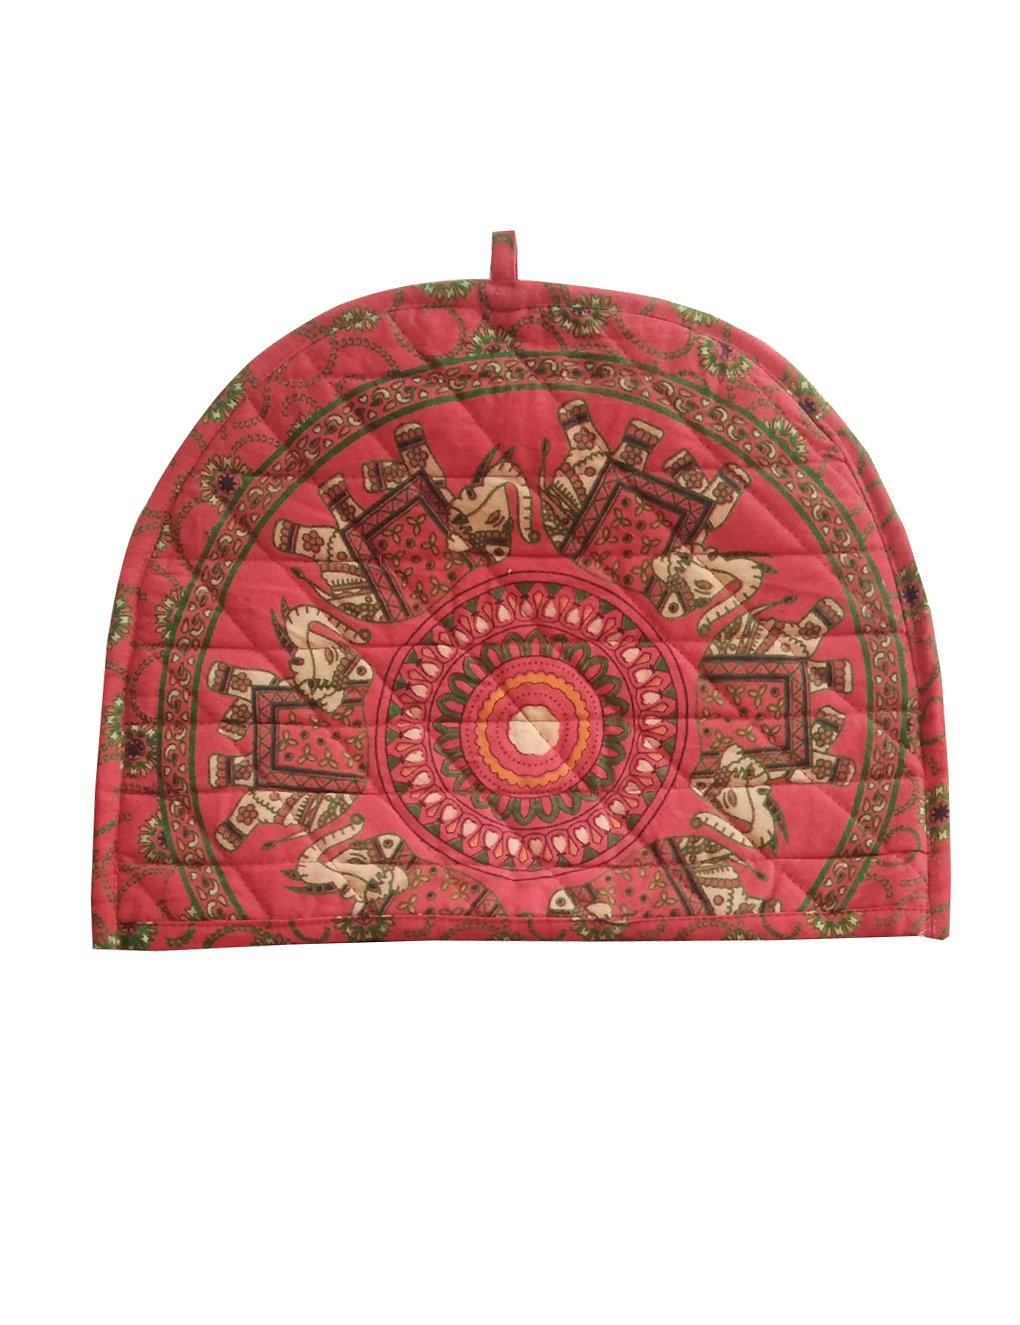 Indian Cotton Mandala Blue Elephant Printed Tea Cosy Abstract Tea Pot Décor Cover Traditional Tea Quilt Floral Warmer Tea Cozies Insulated Gift Shubhlaxmifashion HDOT0030